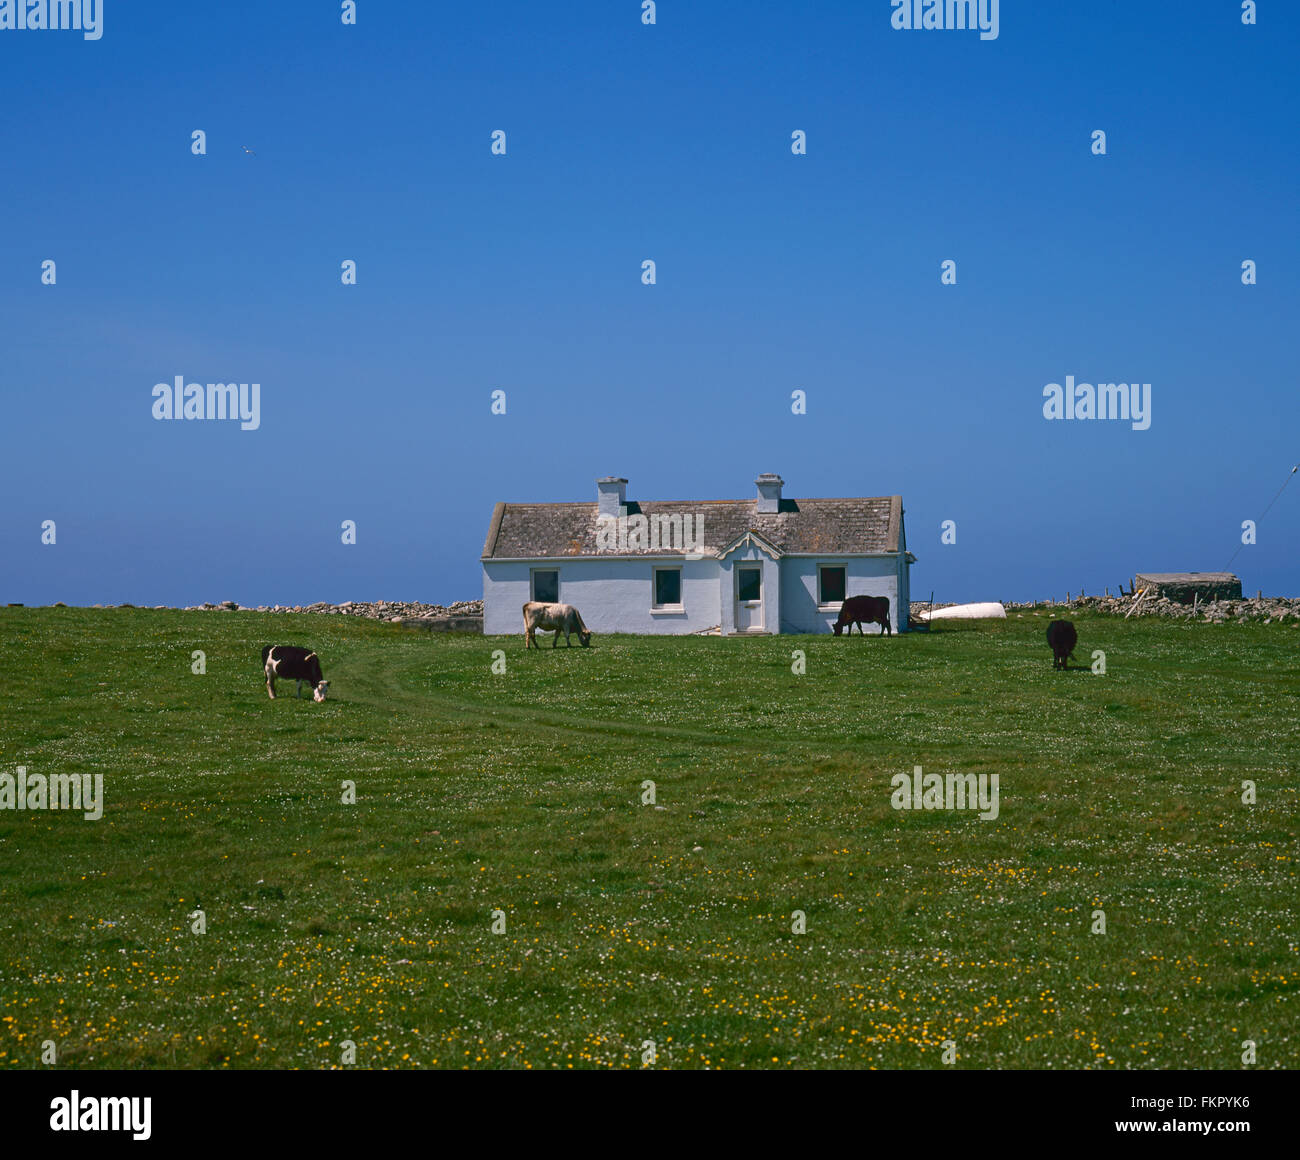 cattle grazing in front of cottage, Belmullet, Co Mayo, West coast of Ireland, Ireland - Stock Image